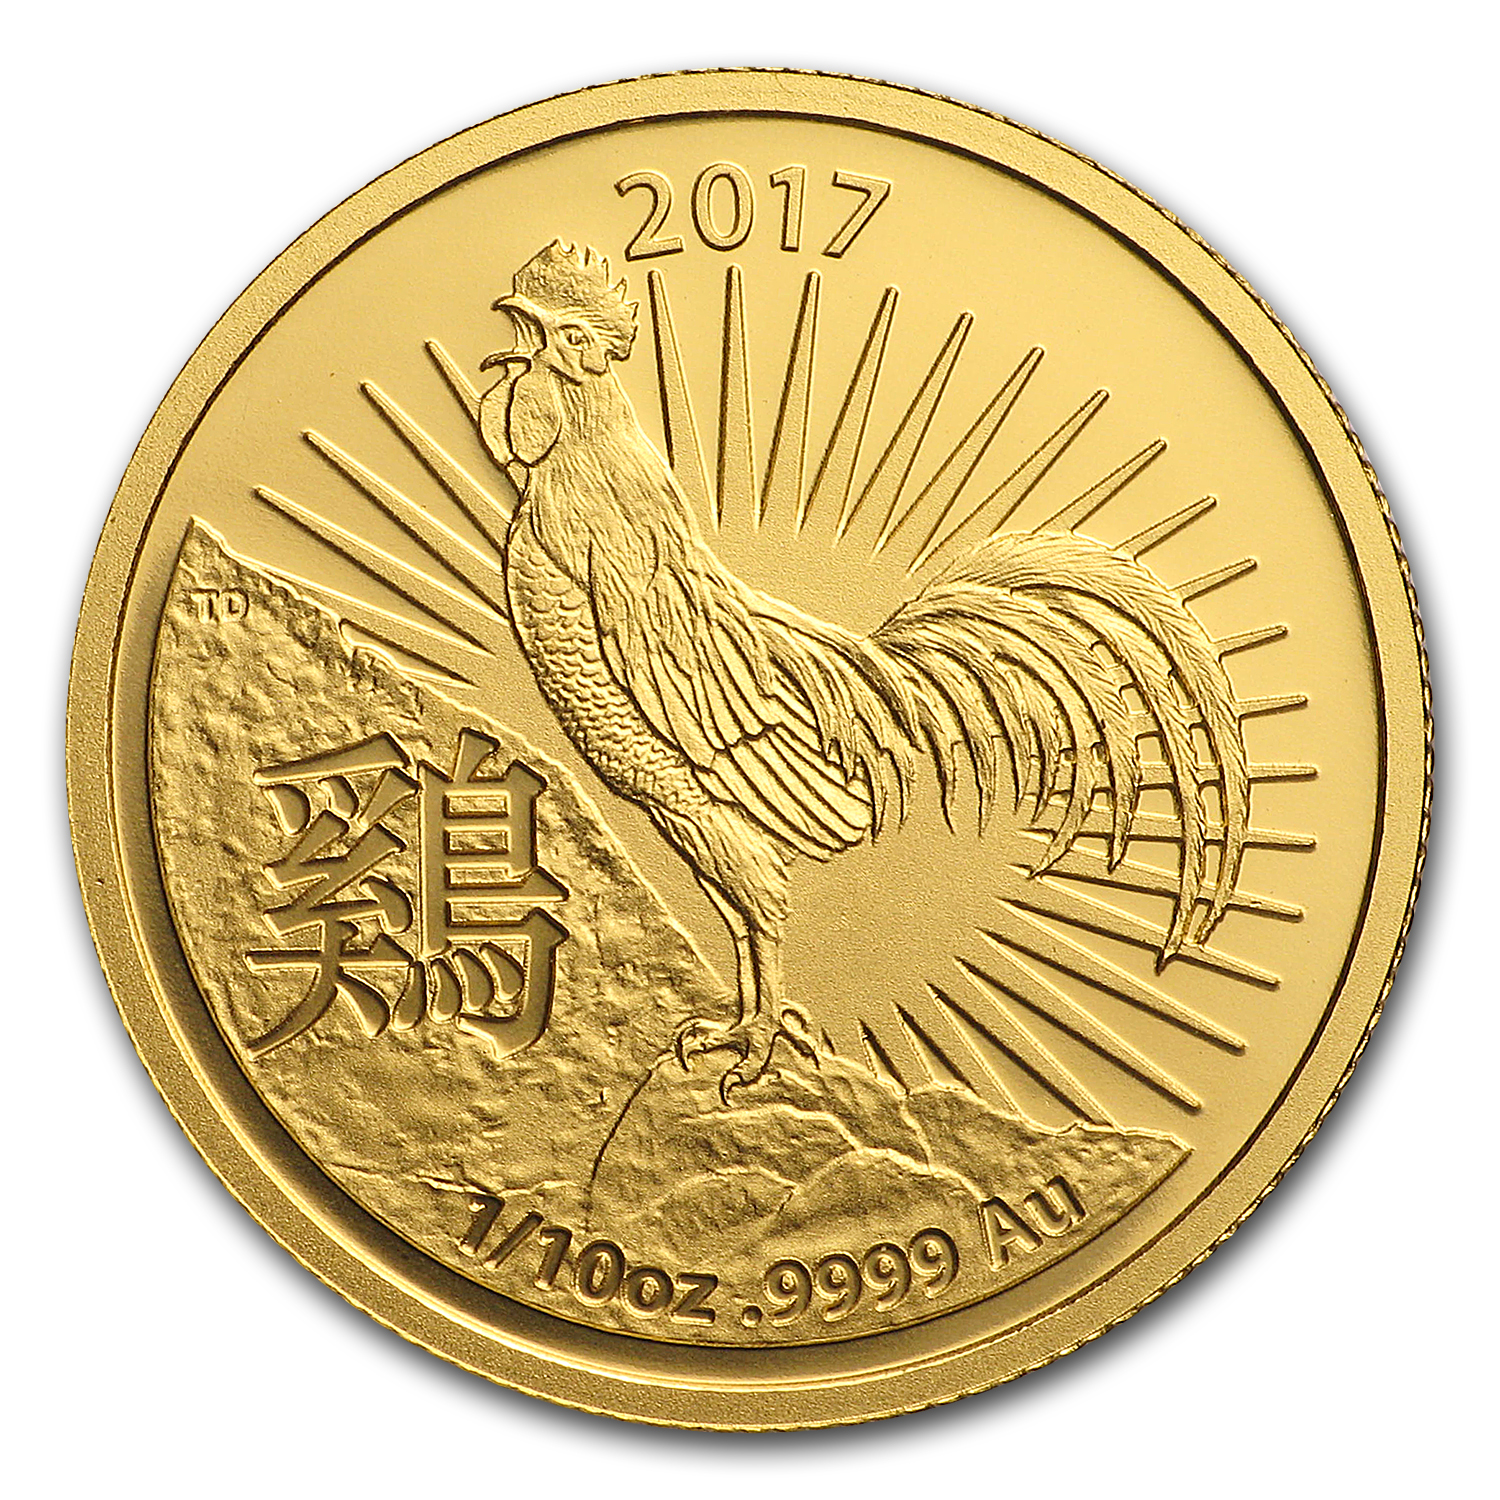 2017 Australia 1/10 oz Gold Lunar Year of the Rooster BU (RAM)